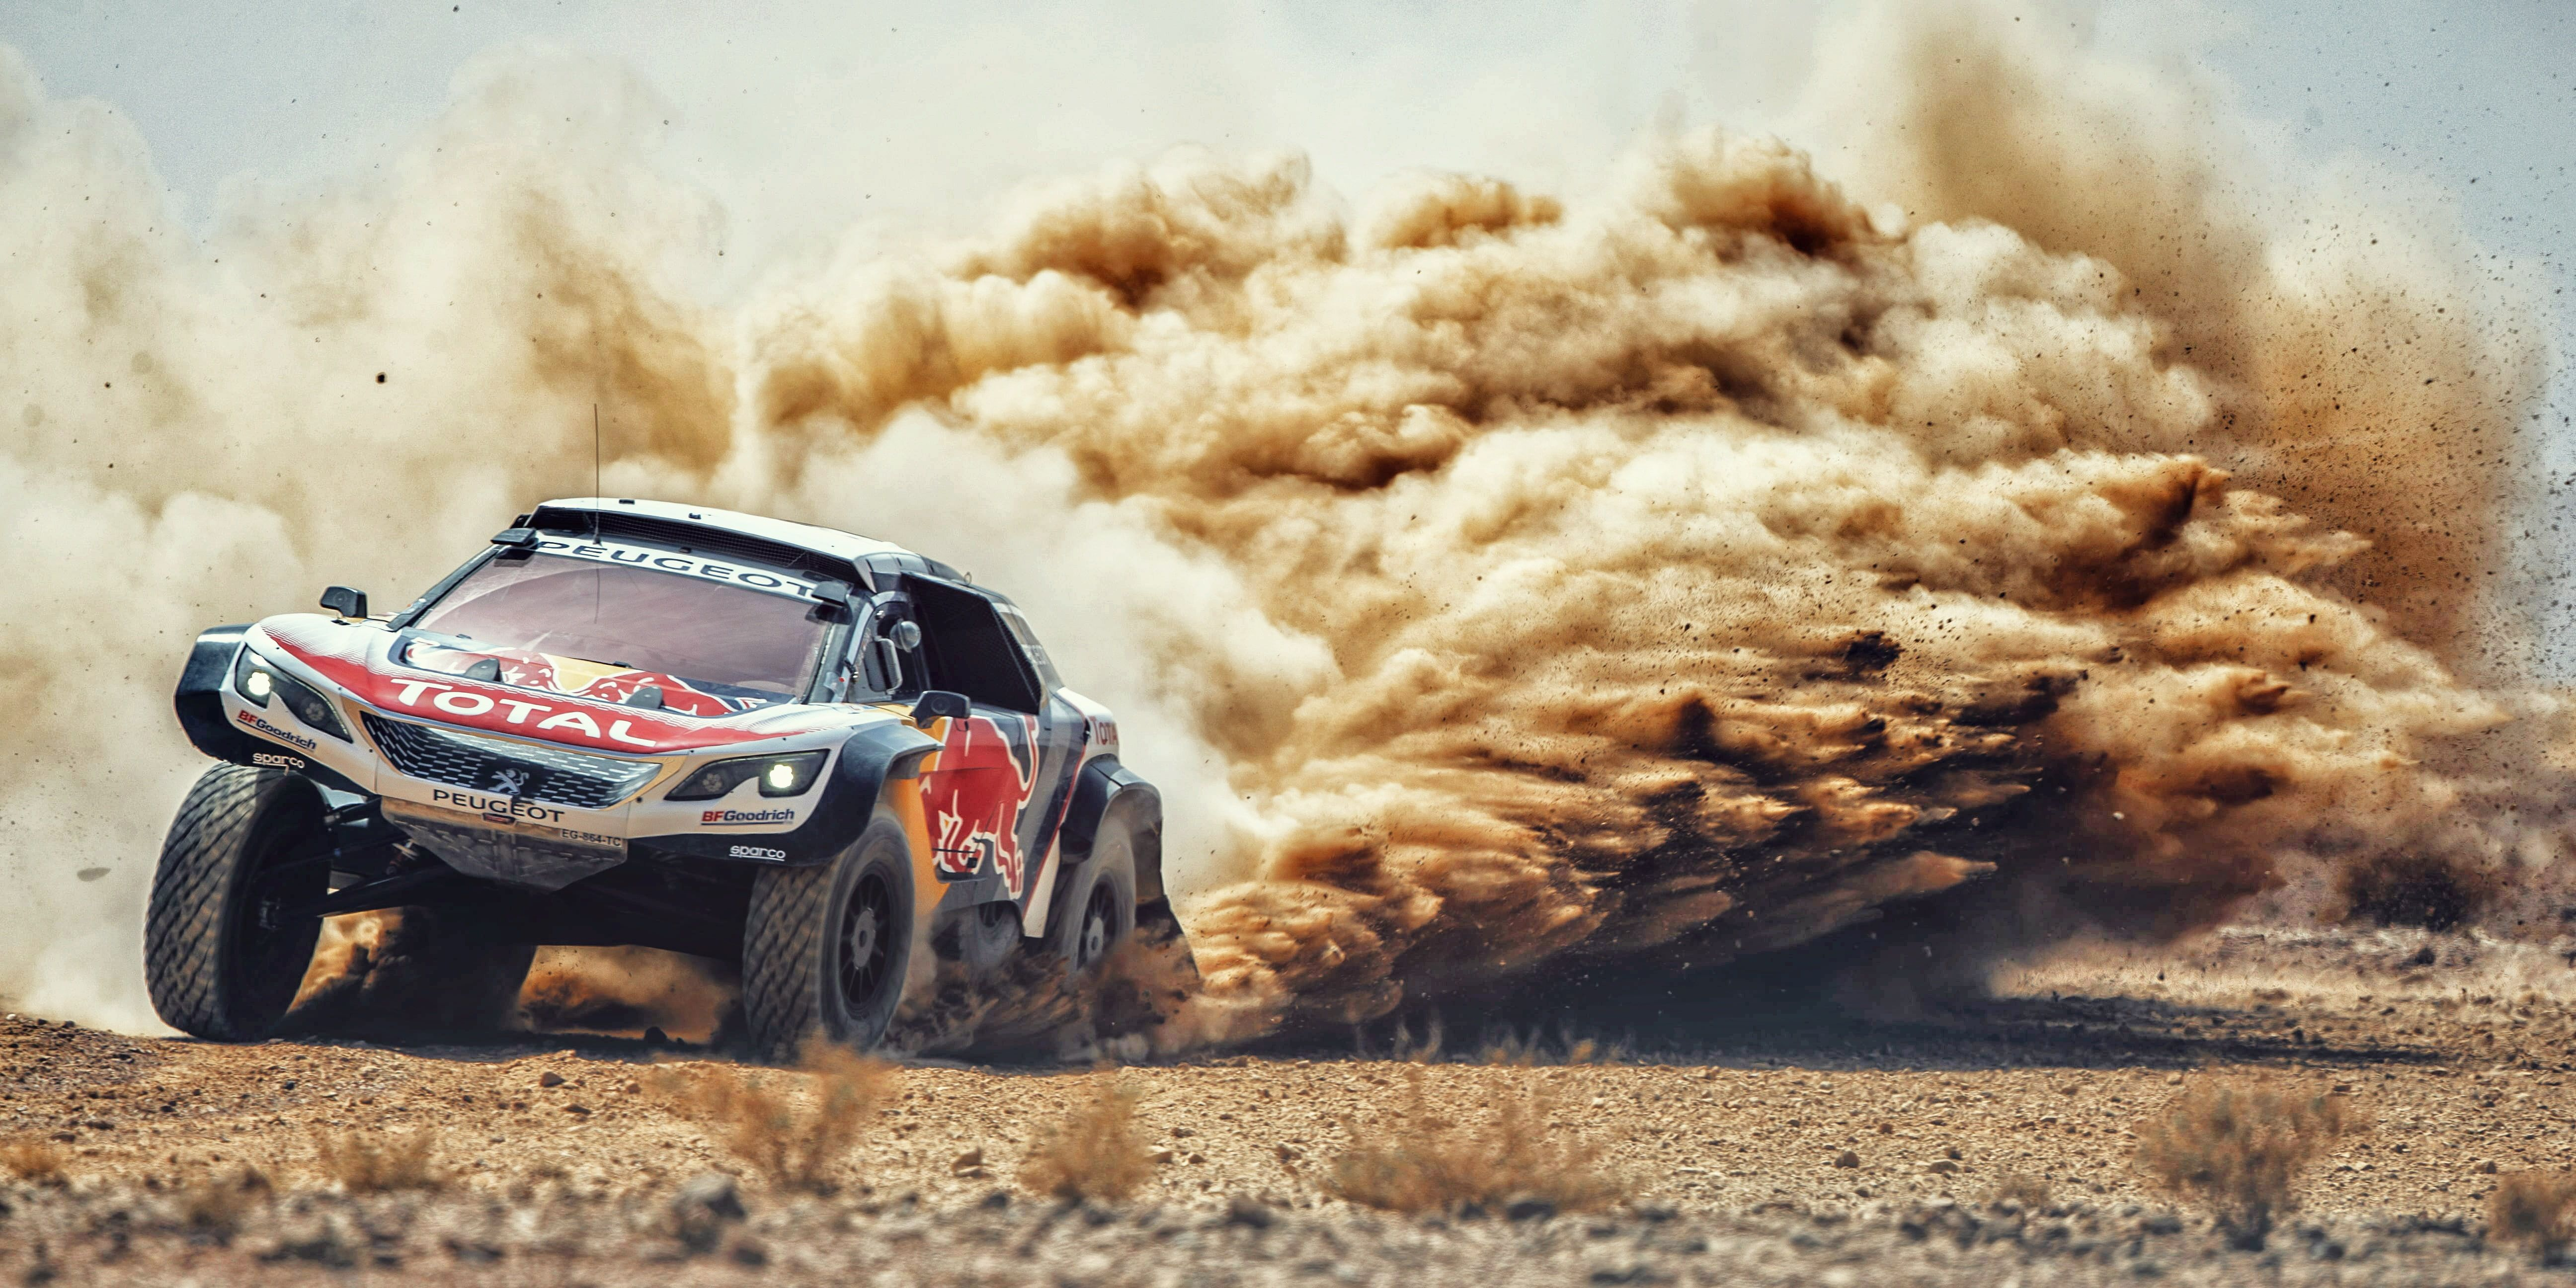 Pin By German Rodriguez On Wallpapers In 2021 Peugeot Rally Car Racing Peugeot 3008